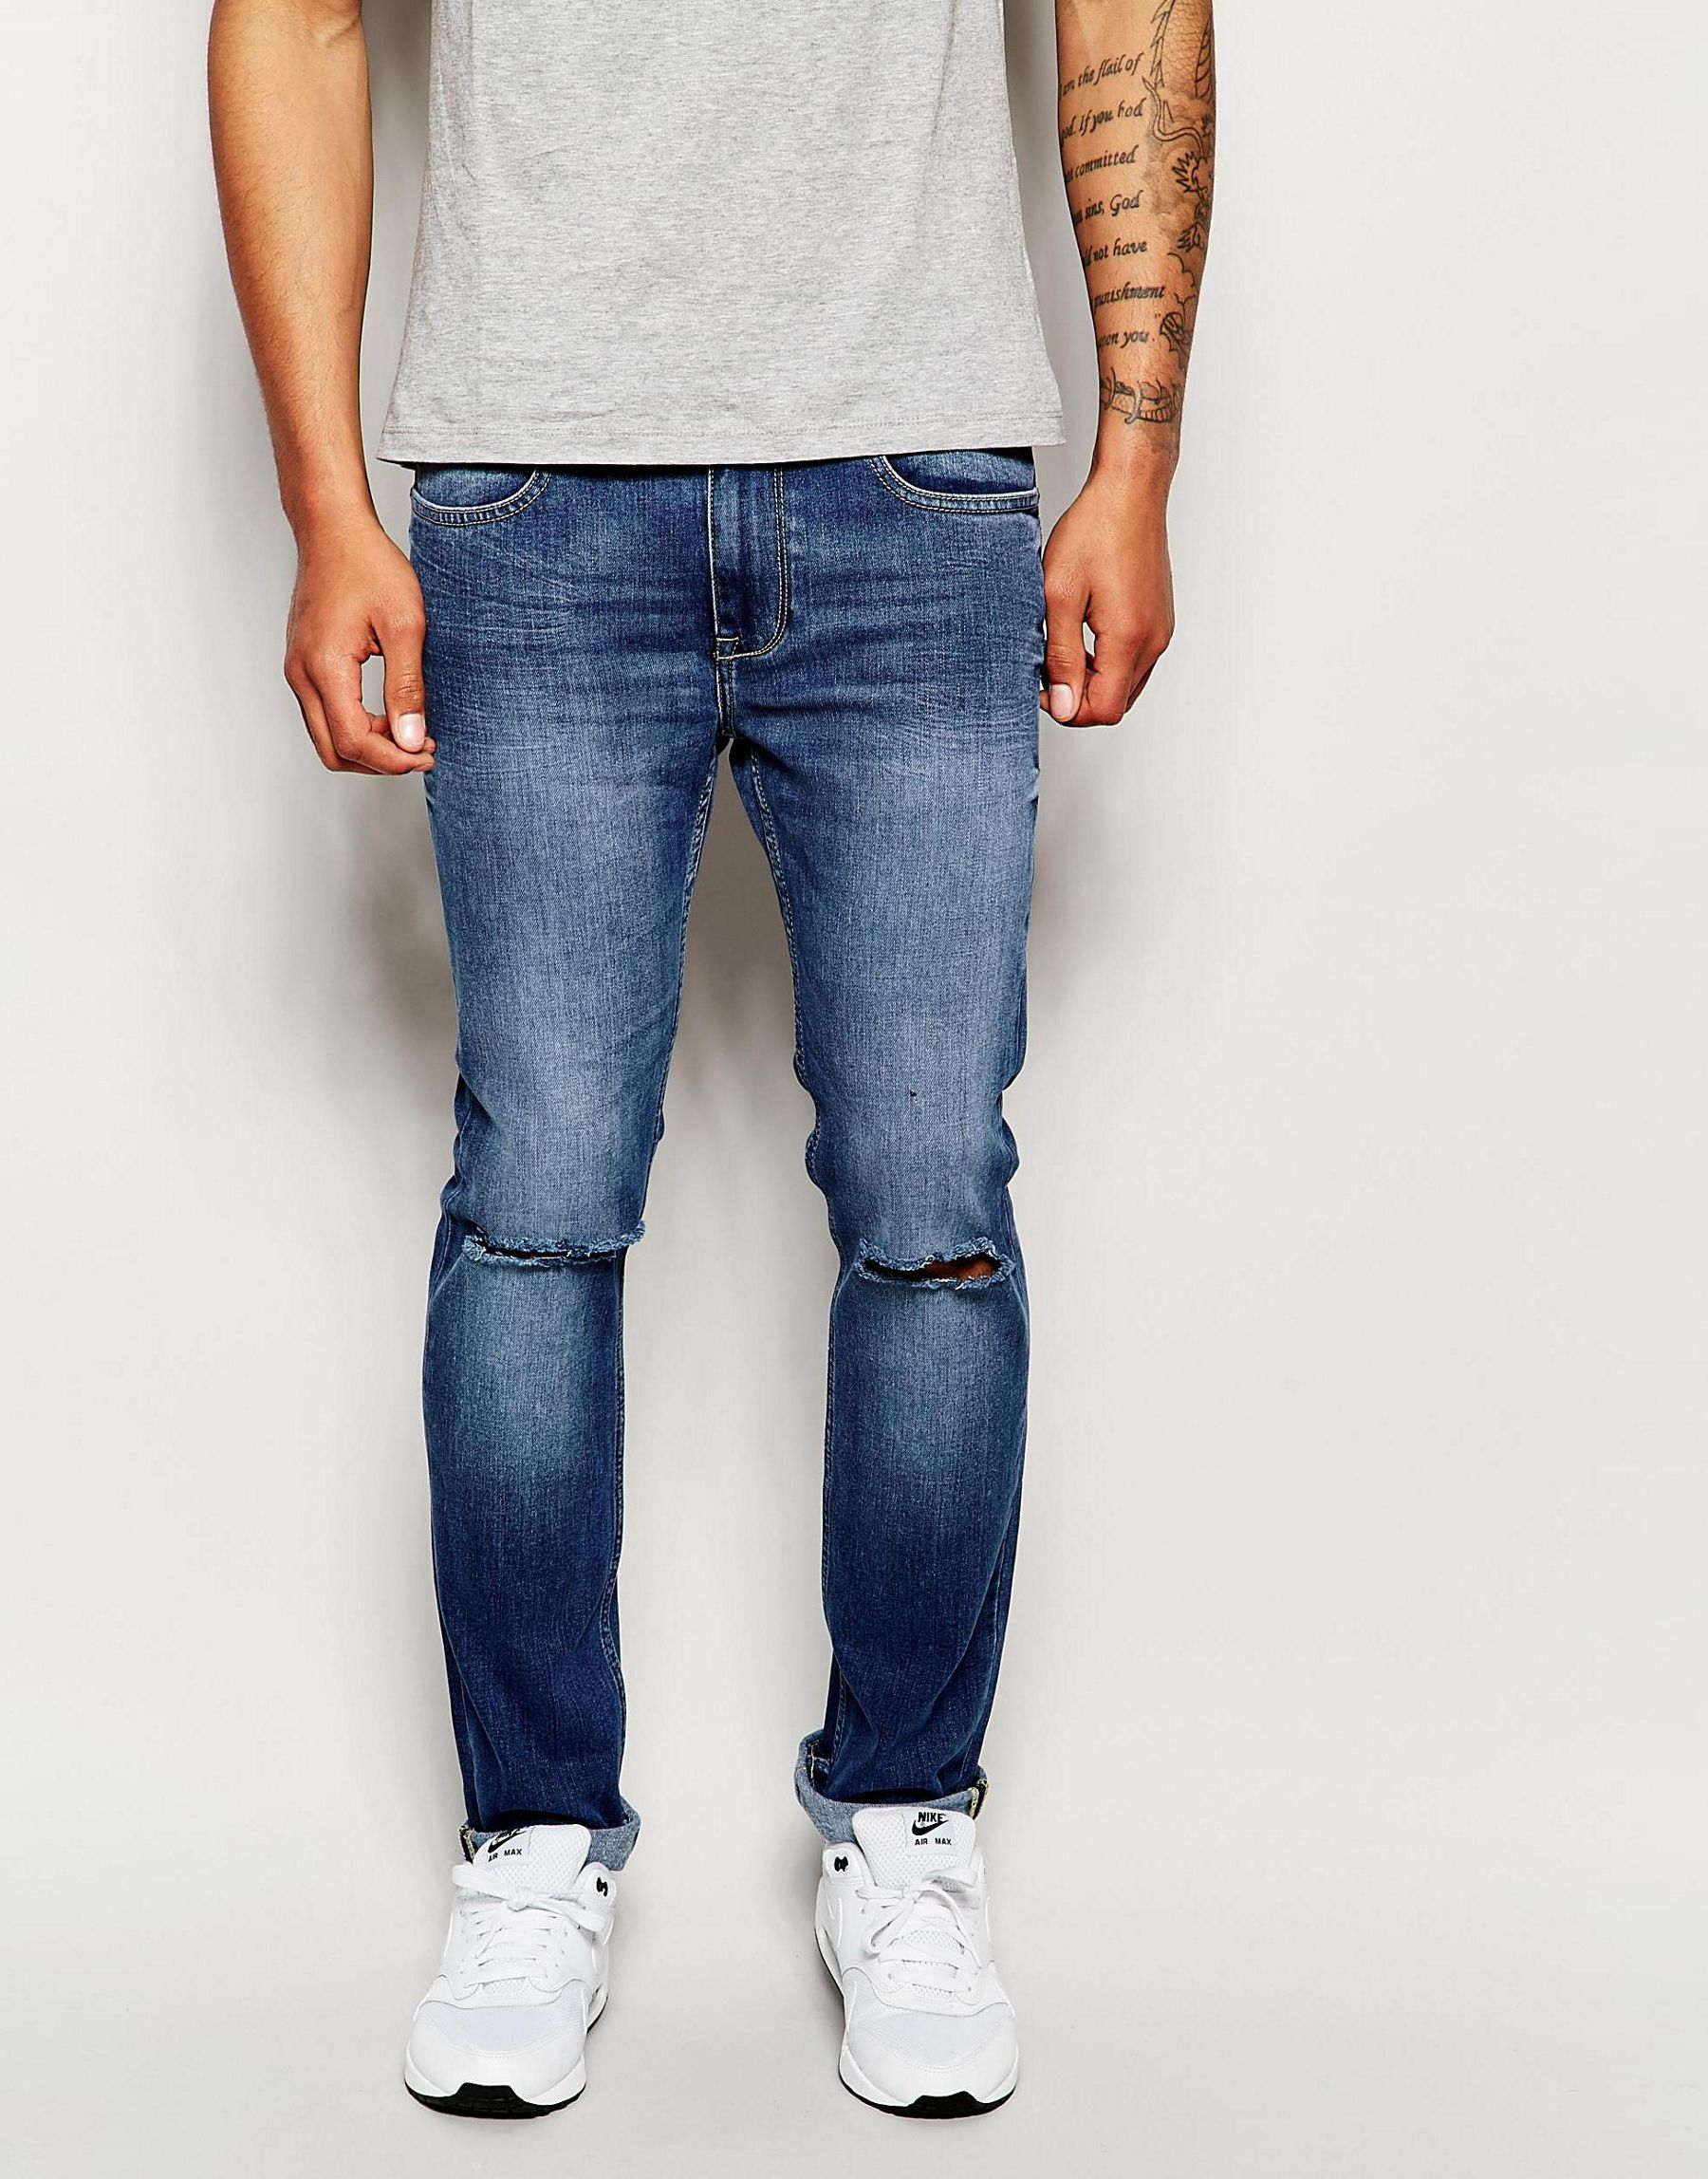 lyst dry cast skinny jean knee rip in blue for men